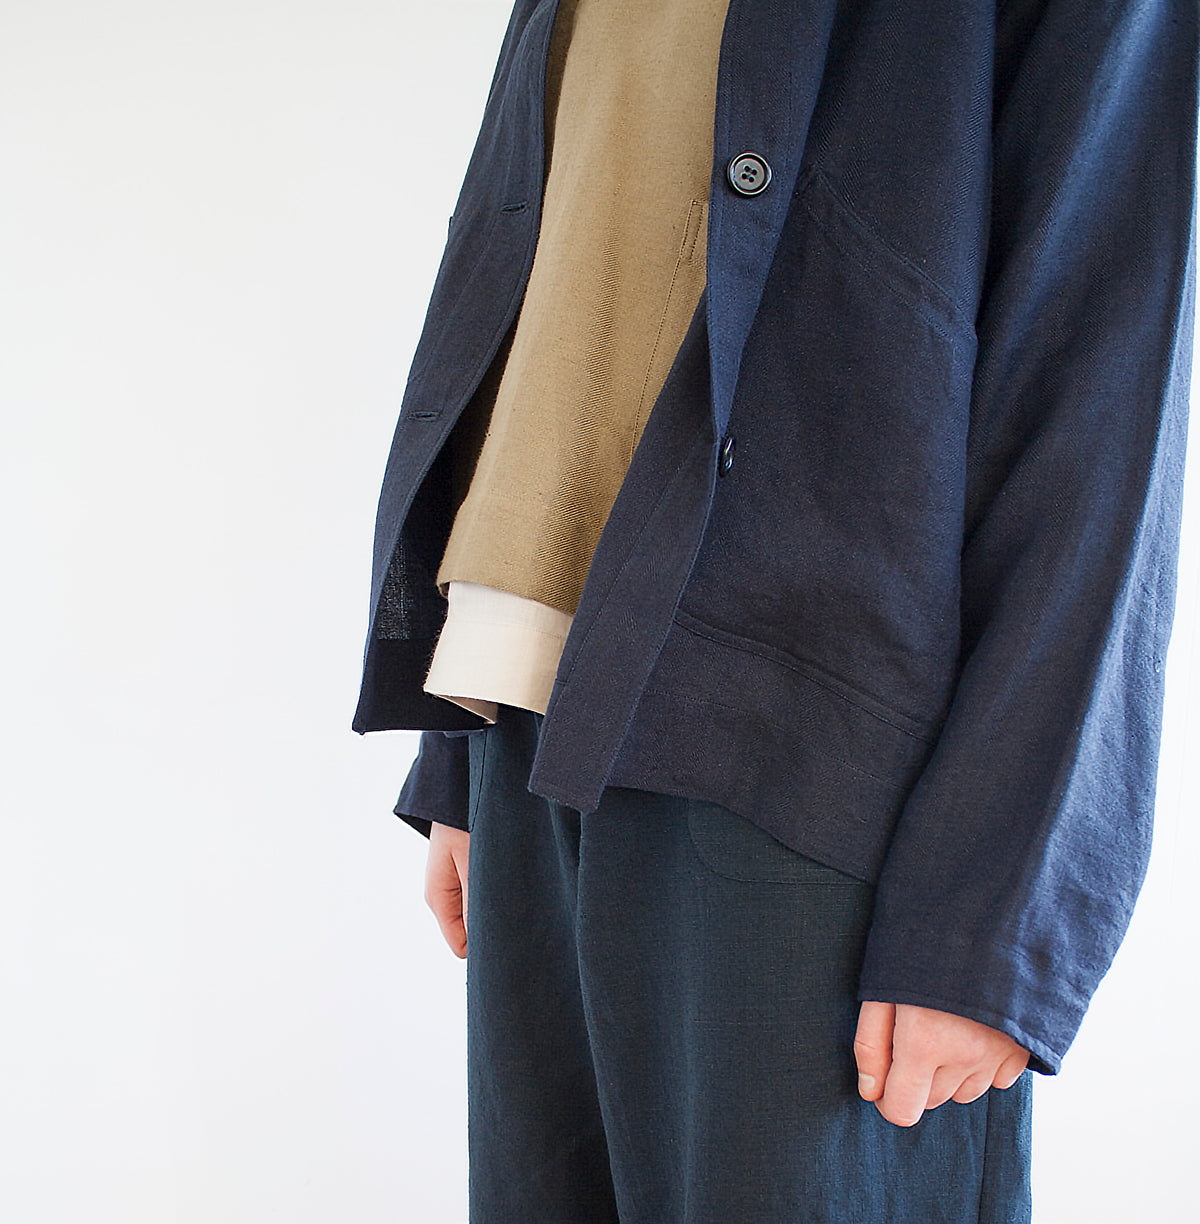 product image womenswear scooped pocket navy linen  jacket